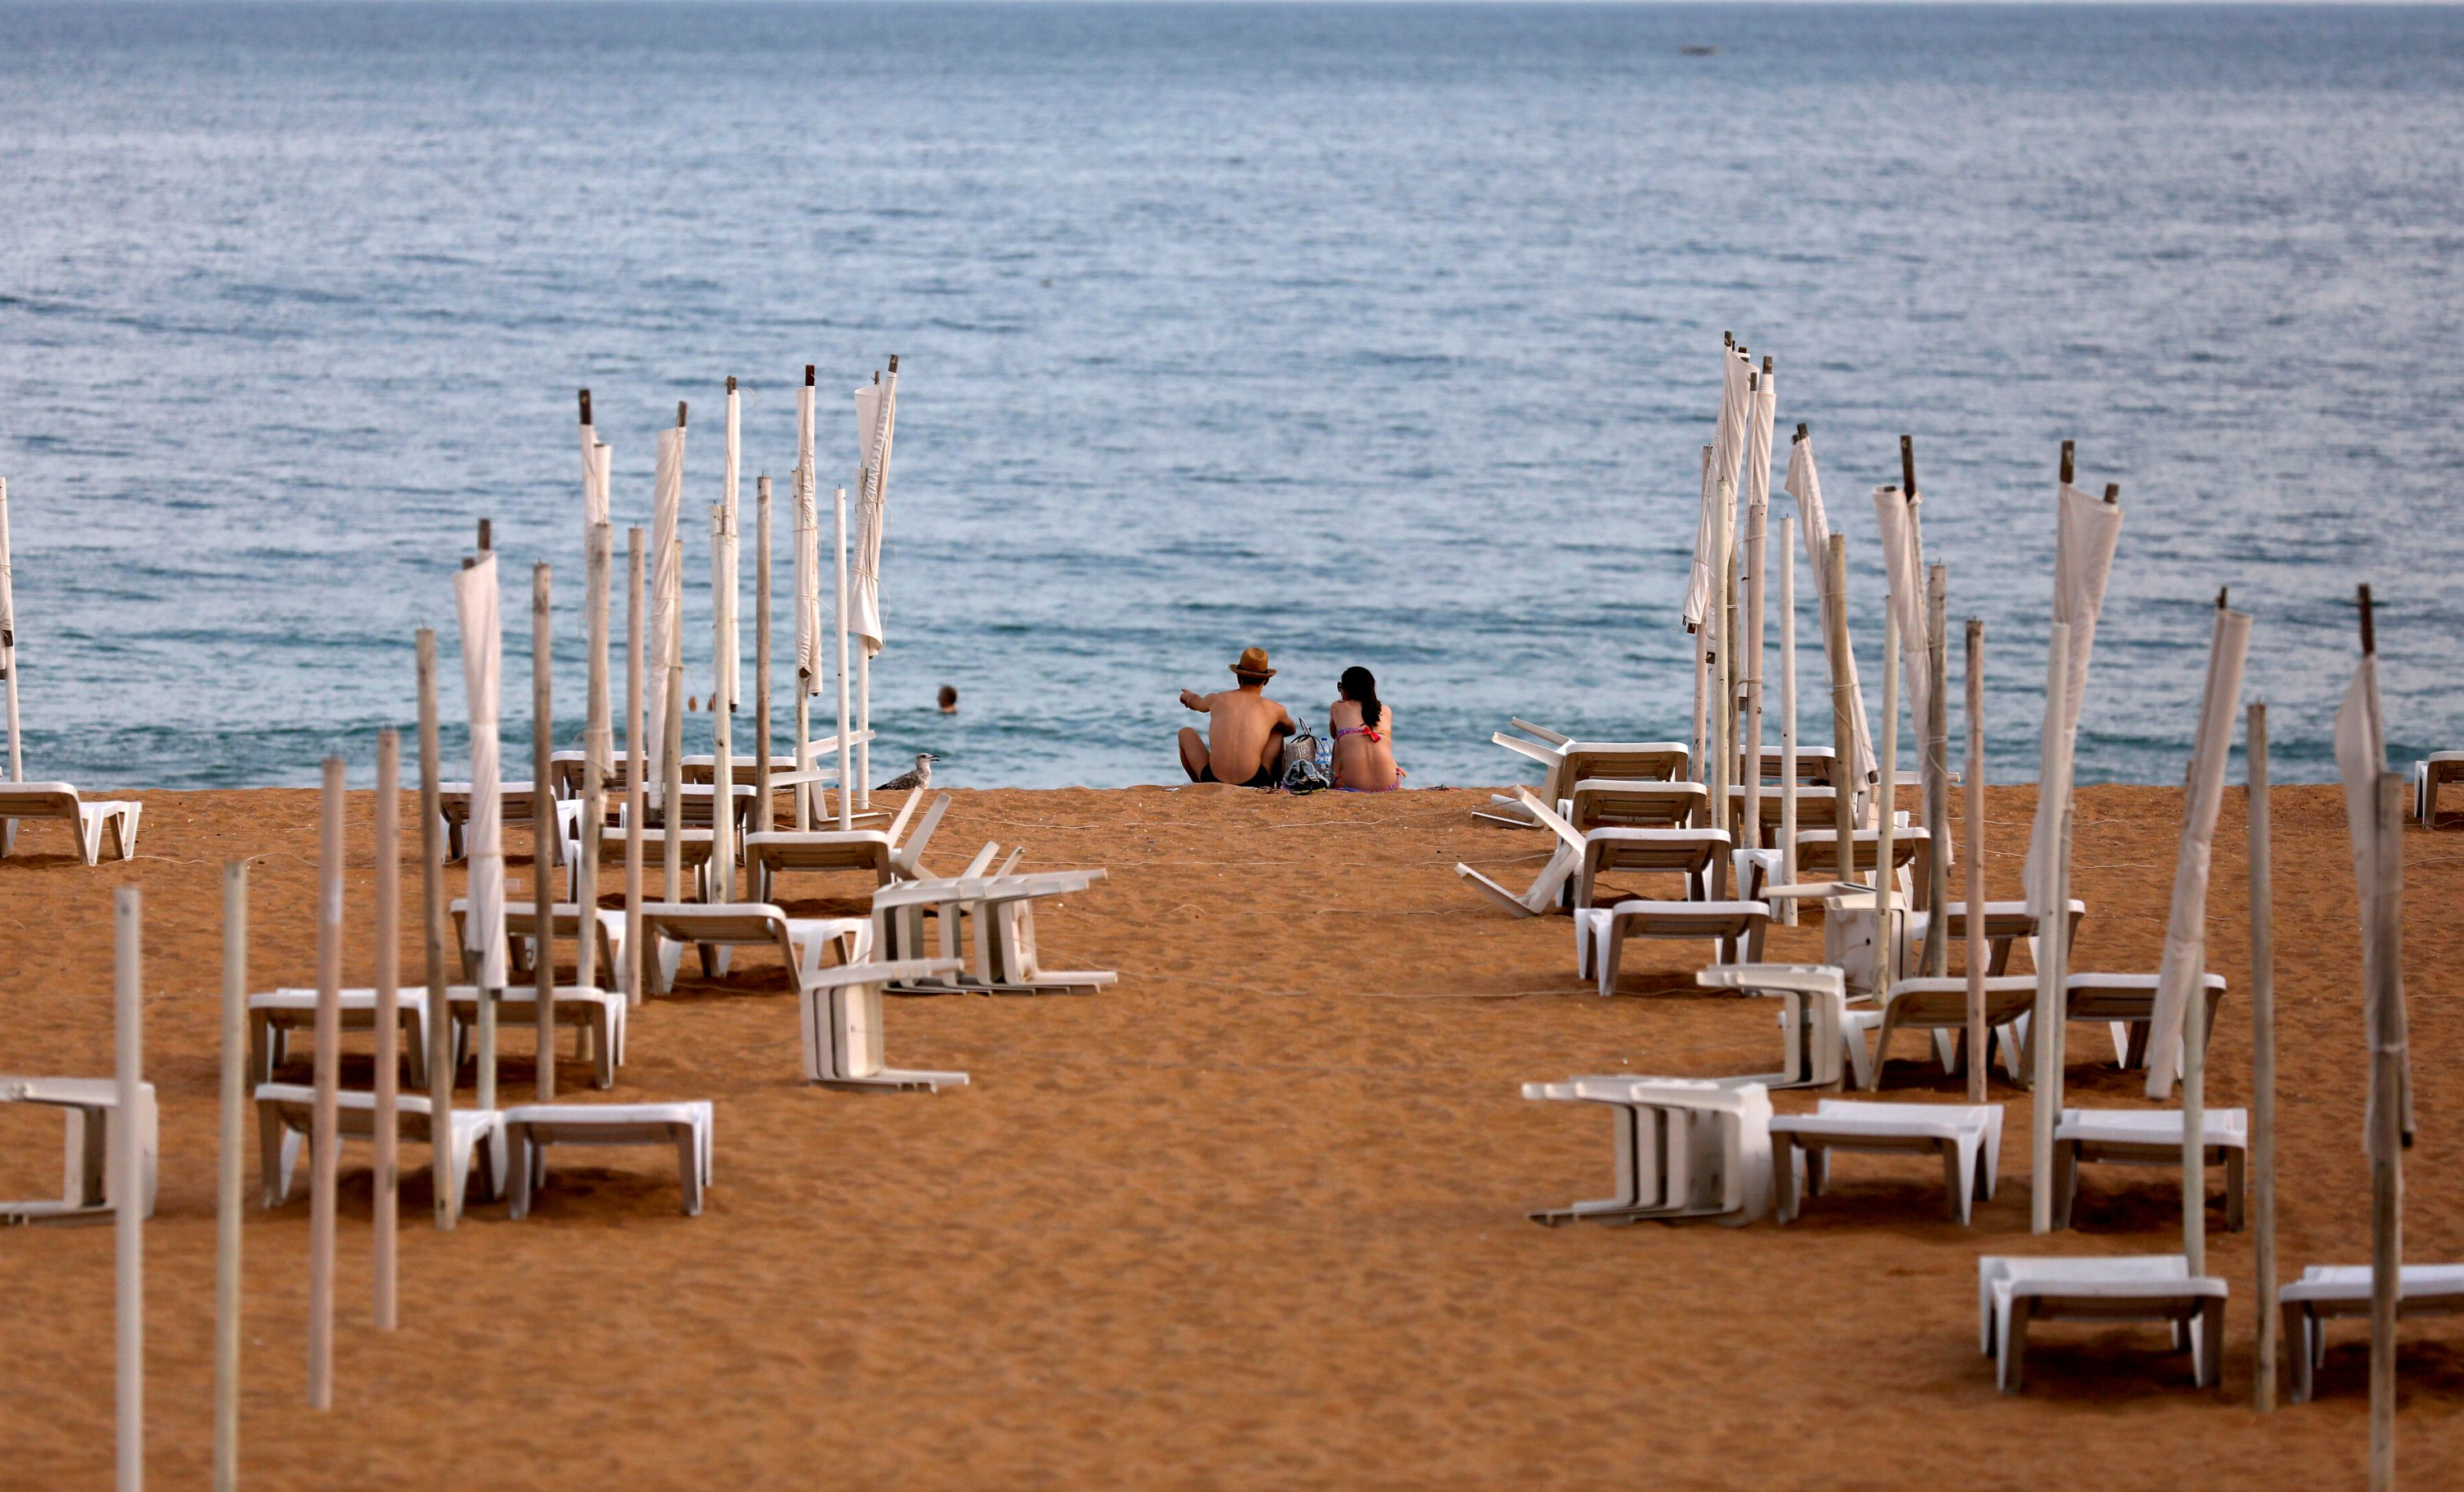 A couple next to rows of empty hammocks during the coronavirus pandemic in Albufeira, Portugal, July 20, 2020. (REUTERS/Rafael Marchante/File Photo/File Photo)